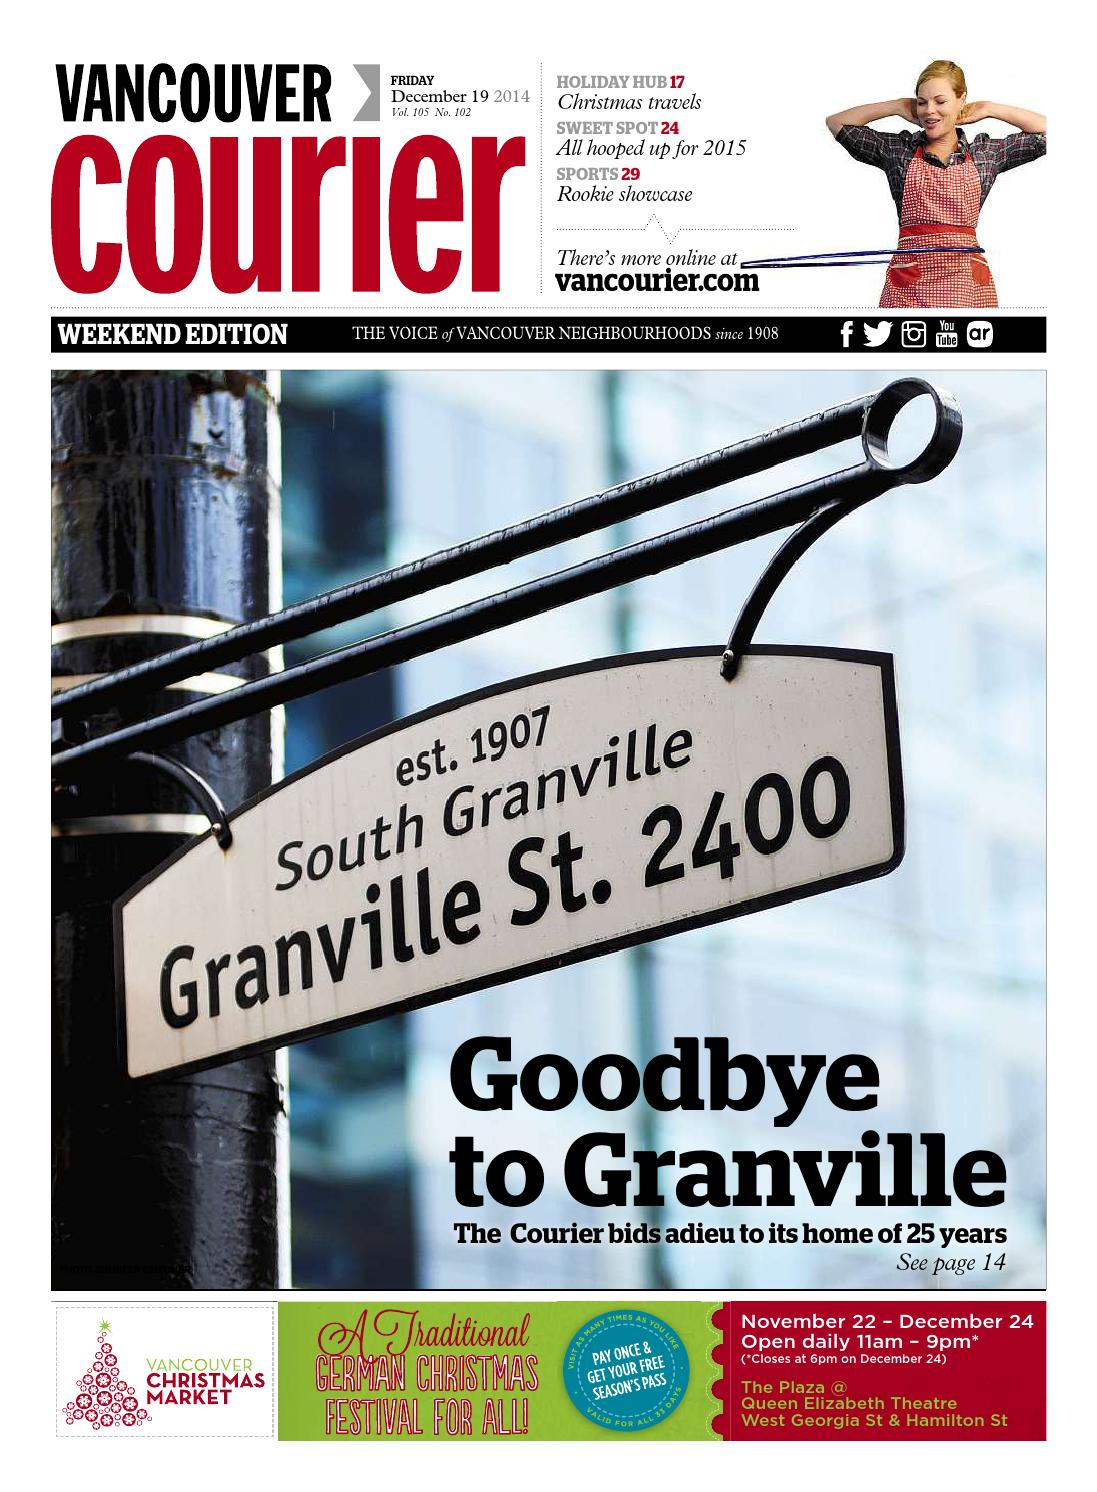 Vancouver courier december 19 2014 by vancouver courier issuu fandeluxe Image collections